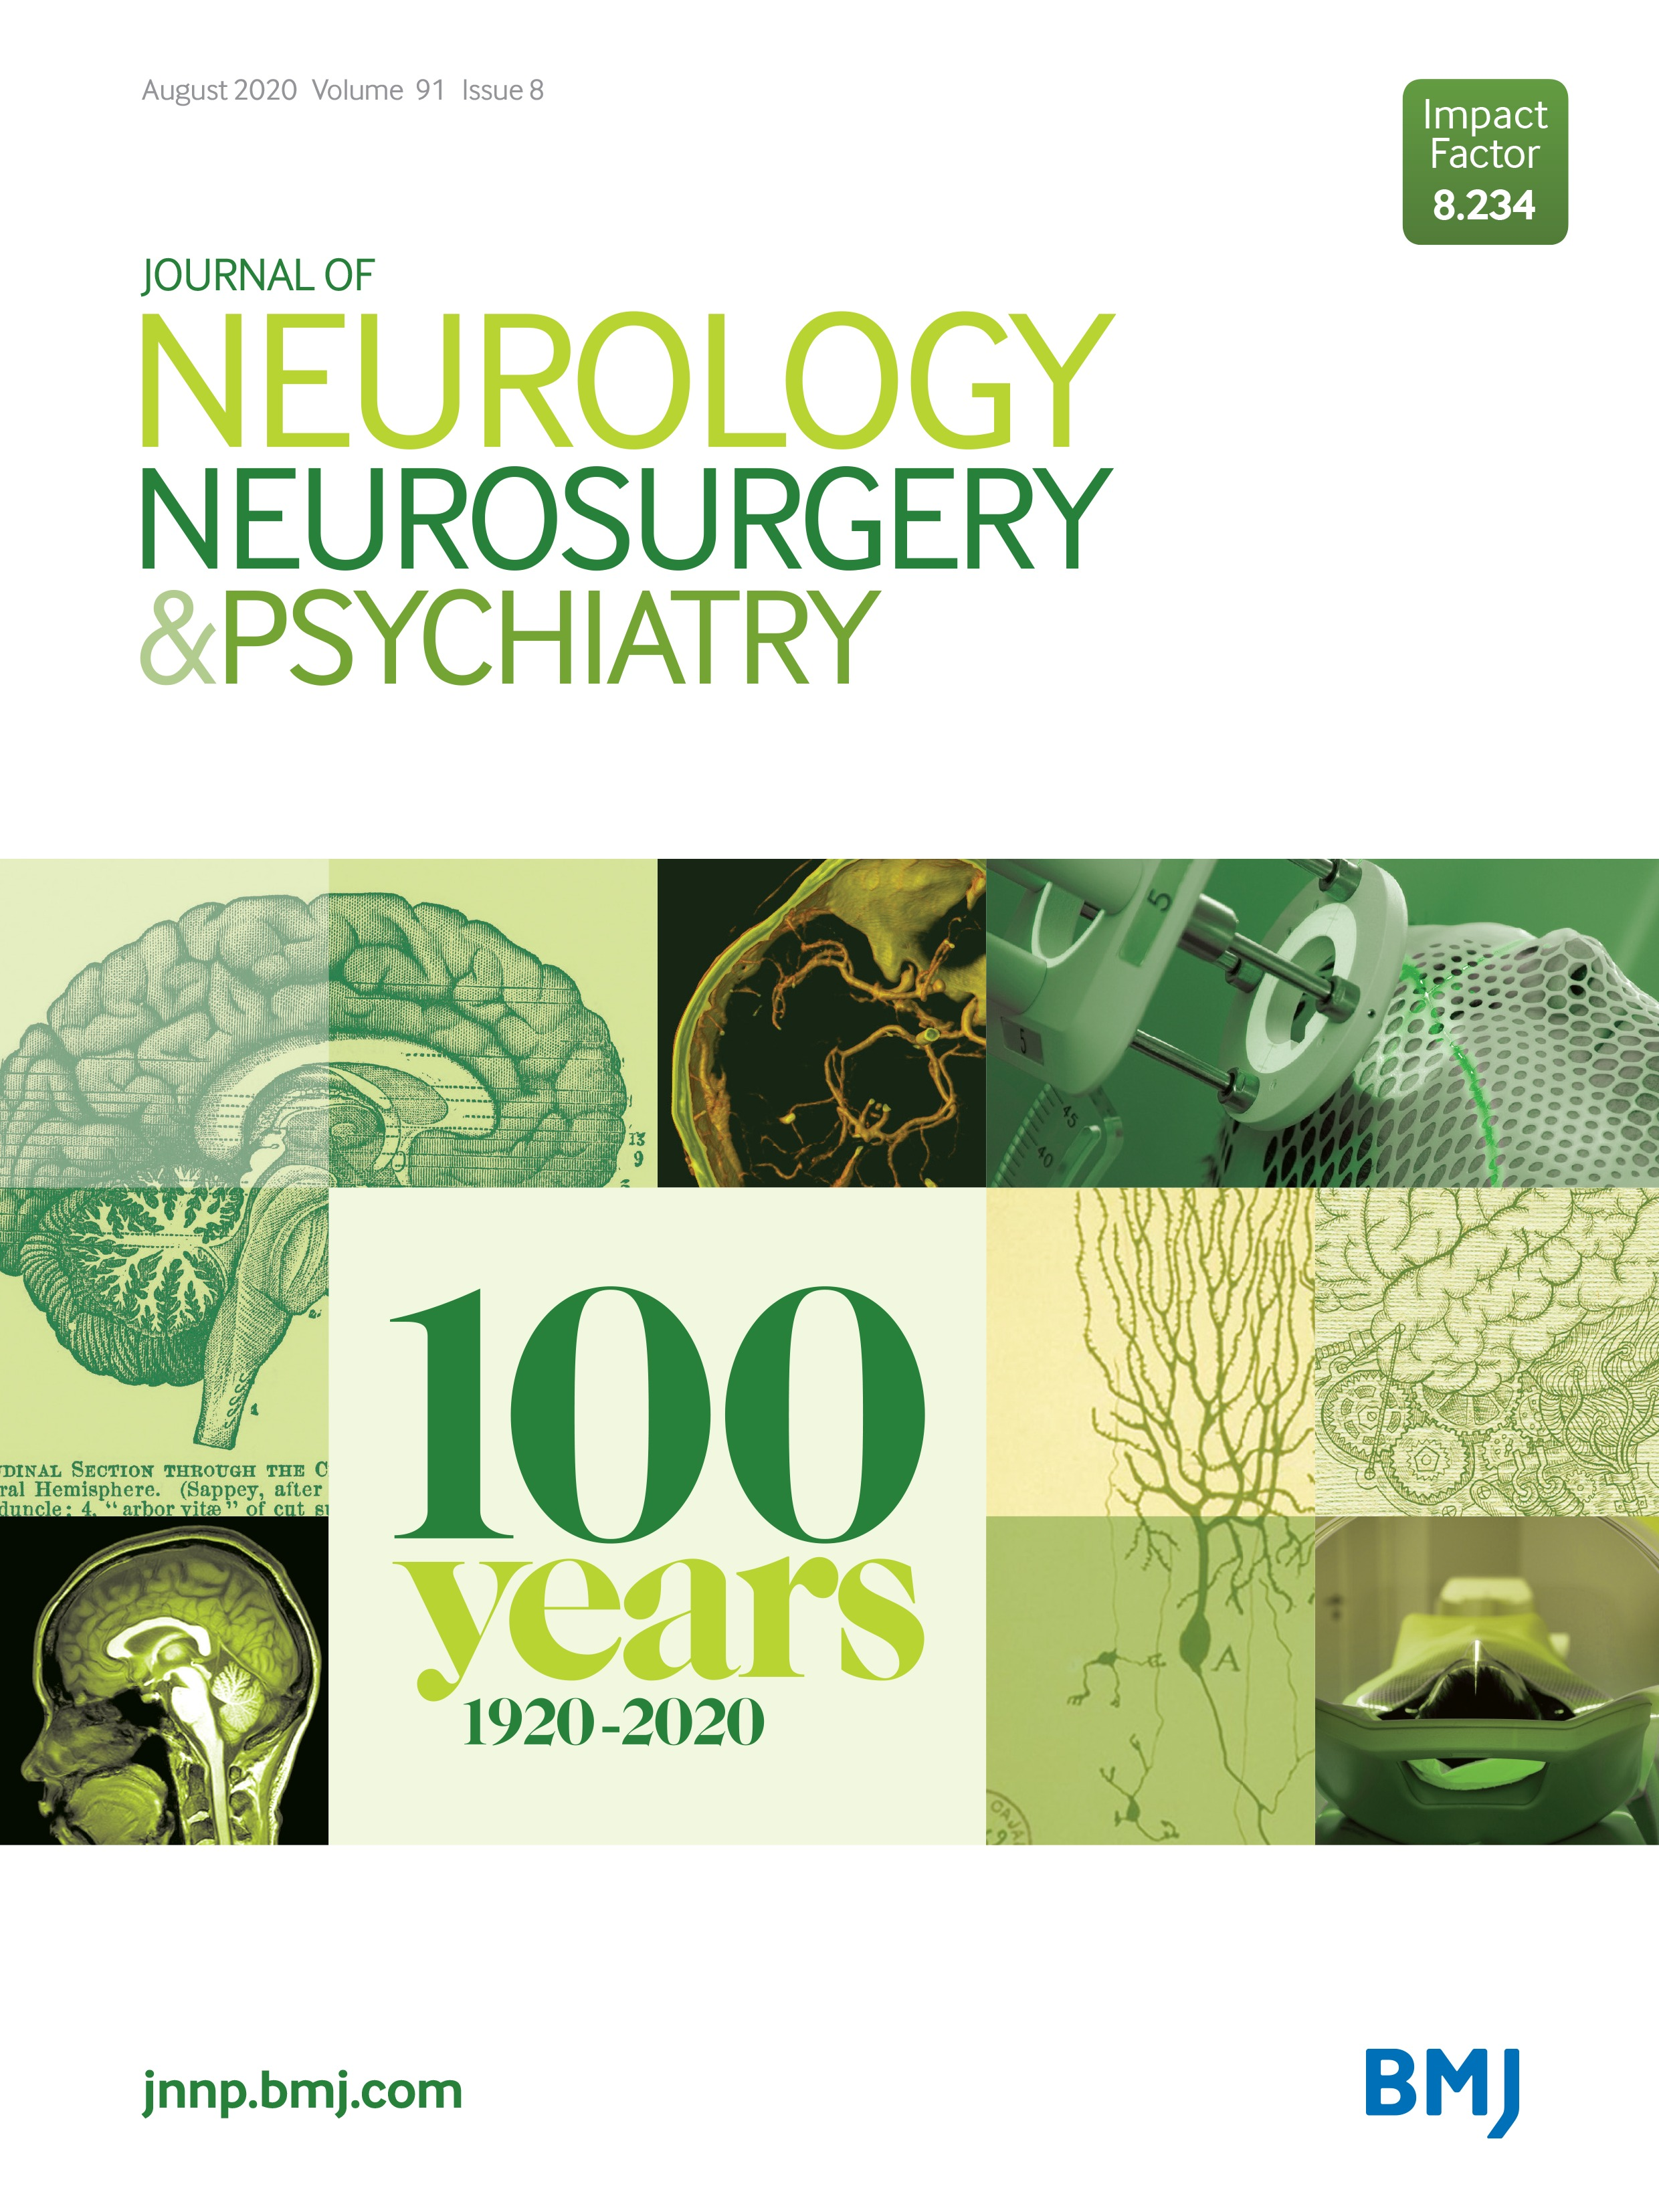 28The link between functional neurological disorder (FND) & migraine: a systematic review